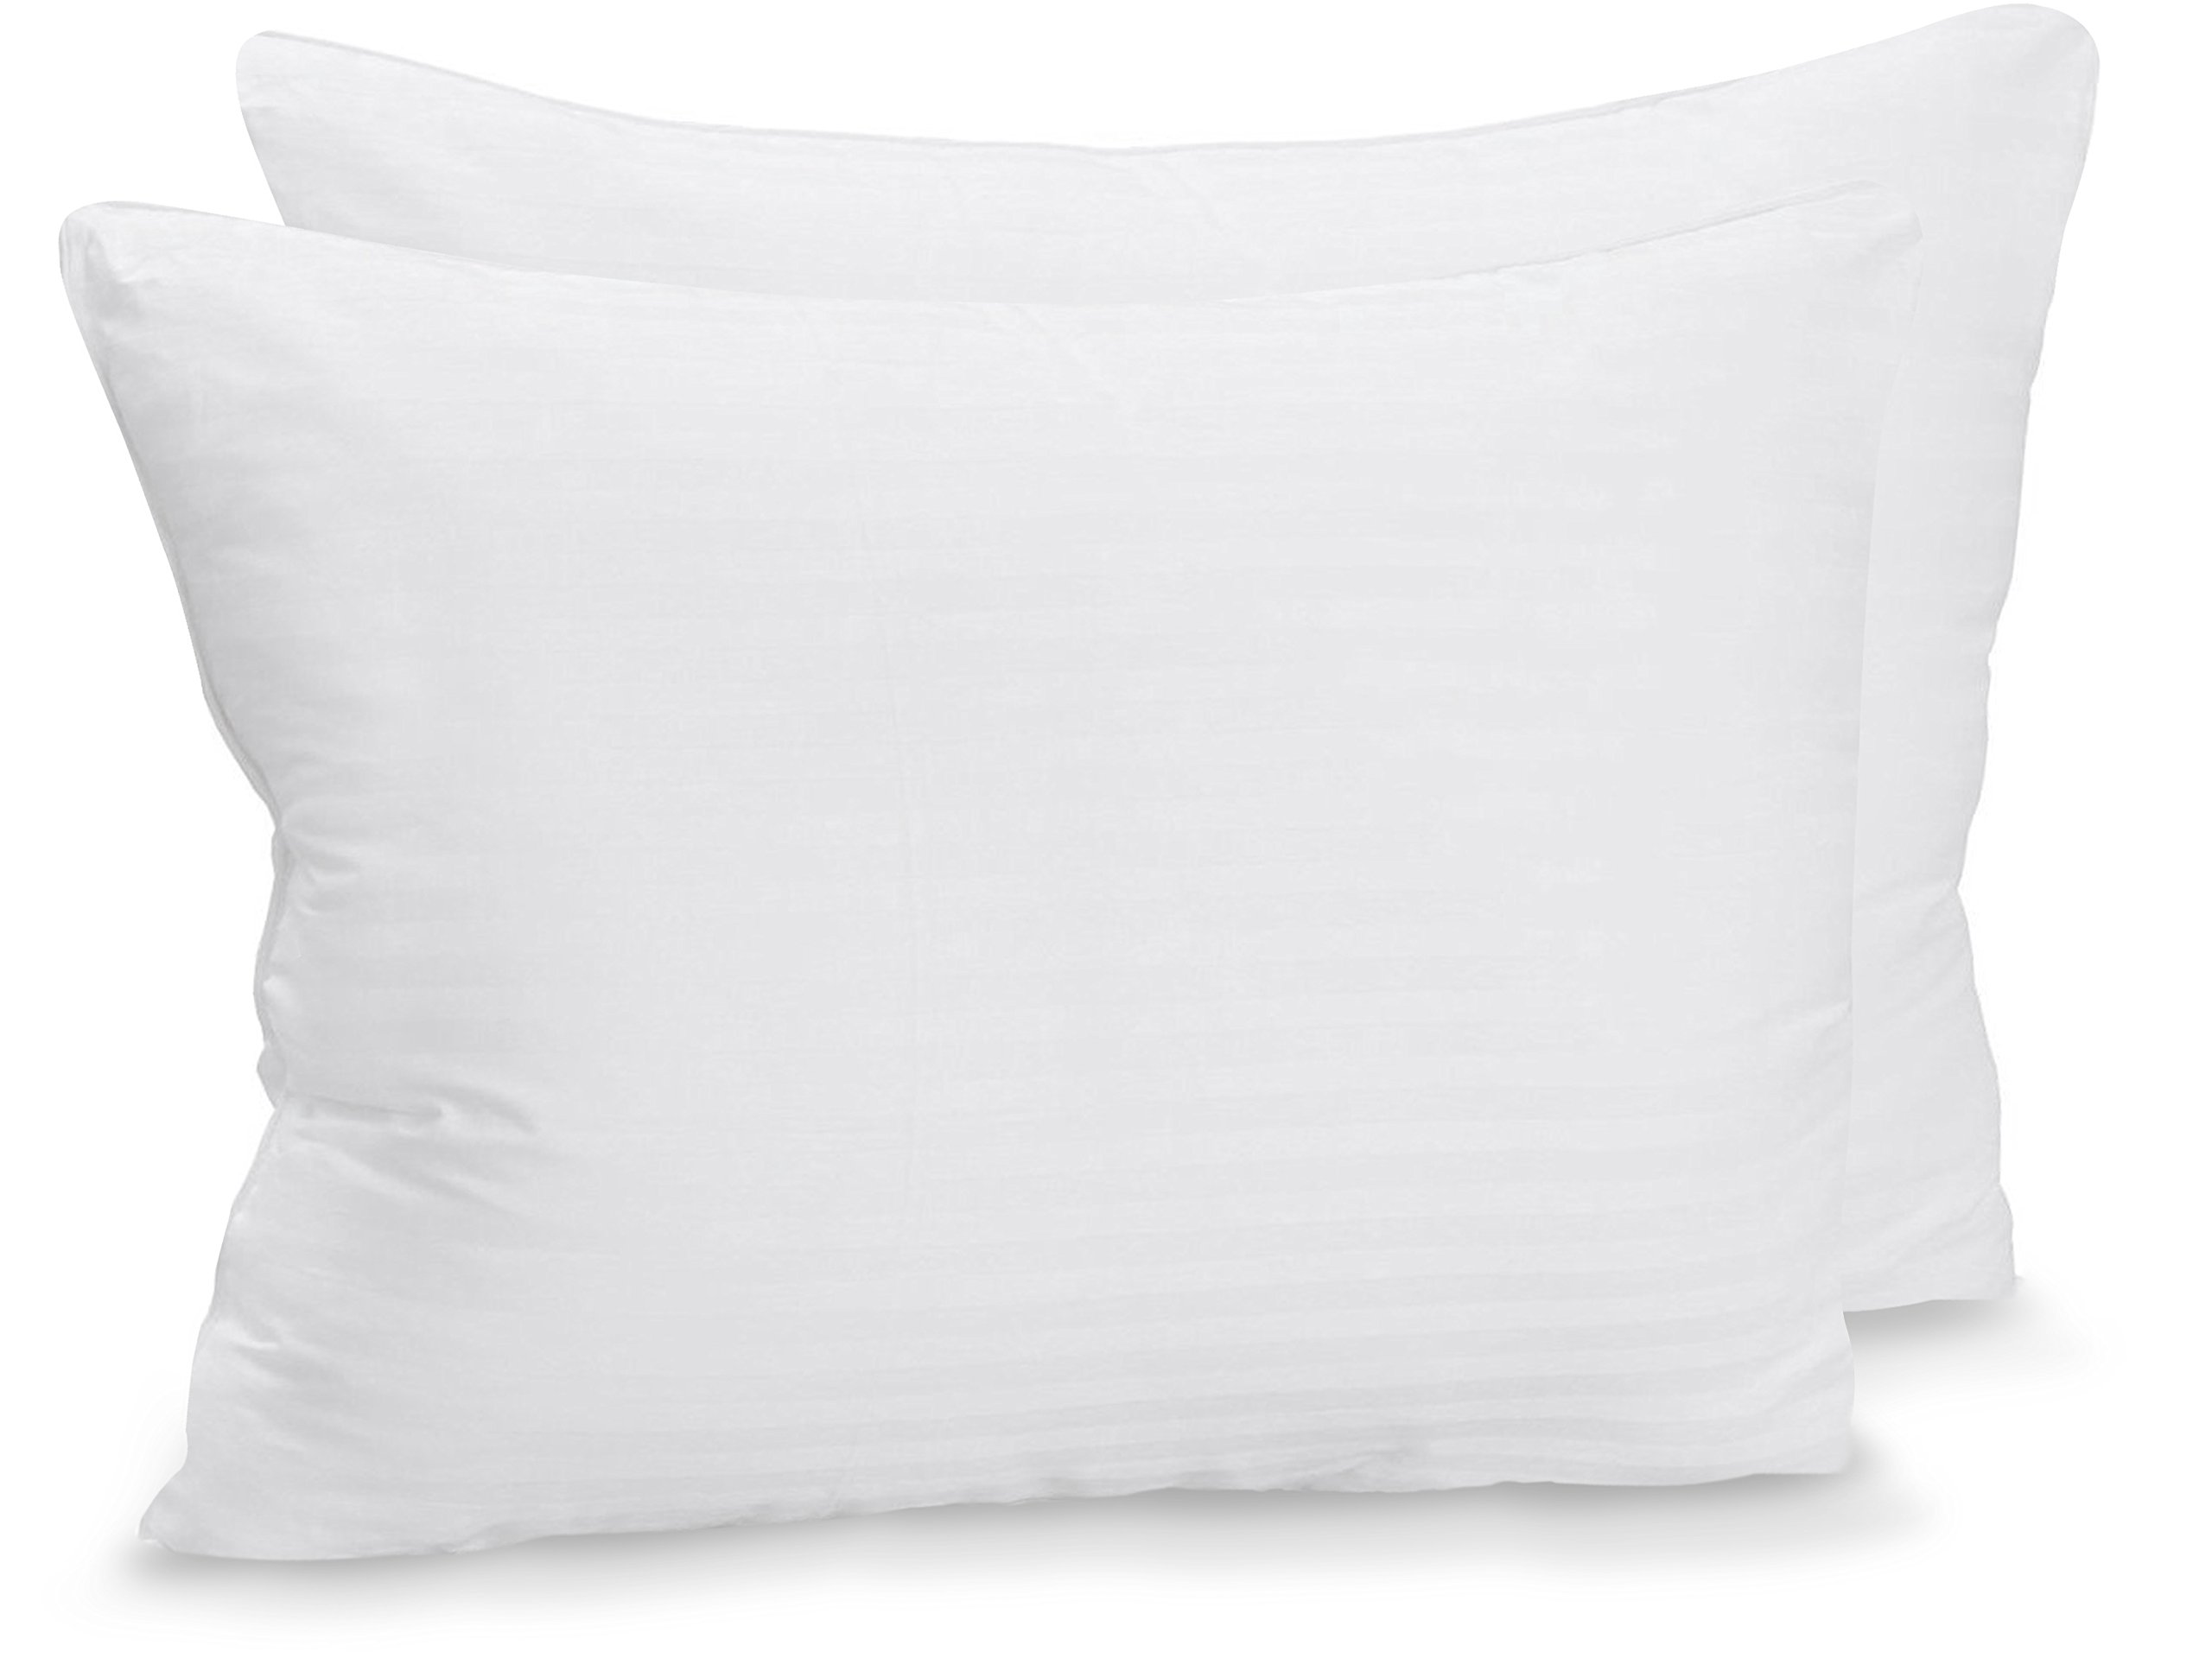 Utopia Bedding Premium Fiber Filled Bed Pillows for Sleeping - Pack of 2 - Super Plush Pillows - Soft and Fluffy Queen Sized Pillows